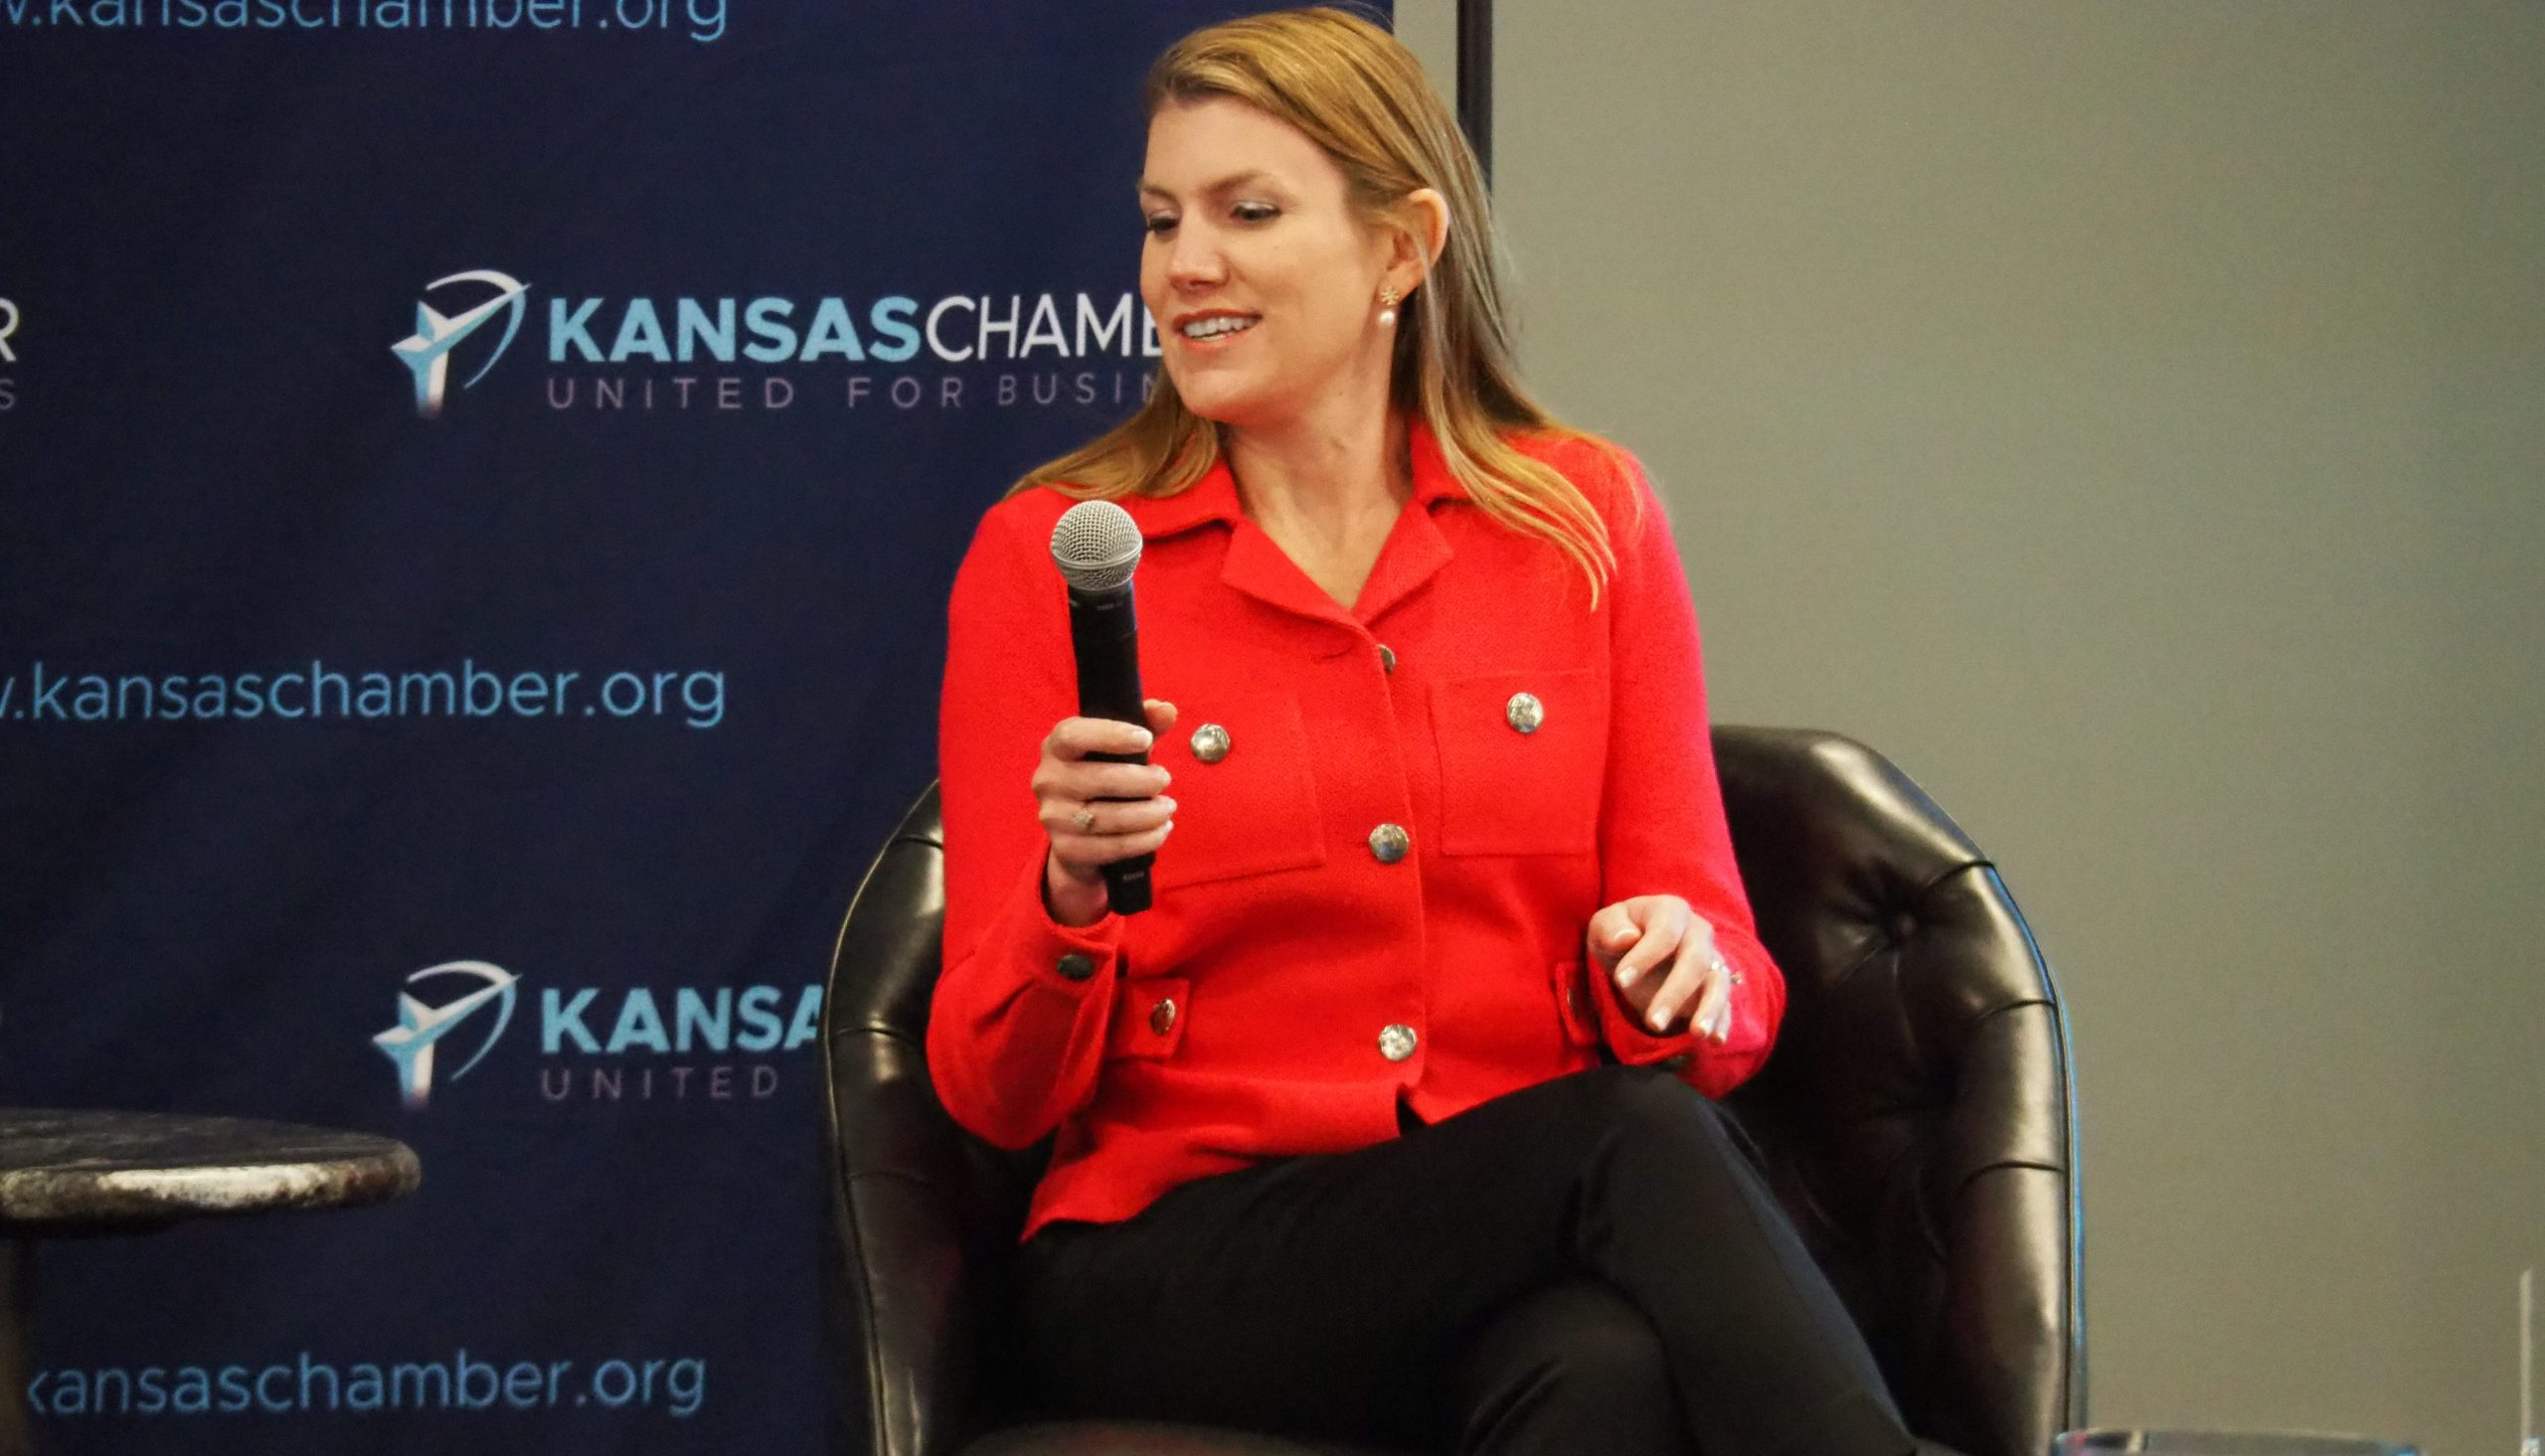 Republican congressional candidate Amanda Adkins' spokesman Tuesday rejected validity of a complaint filed with the Federal Elections Commission alleging Adkins violated federal law by raising thousands of dollars before formally establishing her candidacy. (Tim Carpenter/Kansas Reflector)